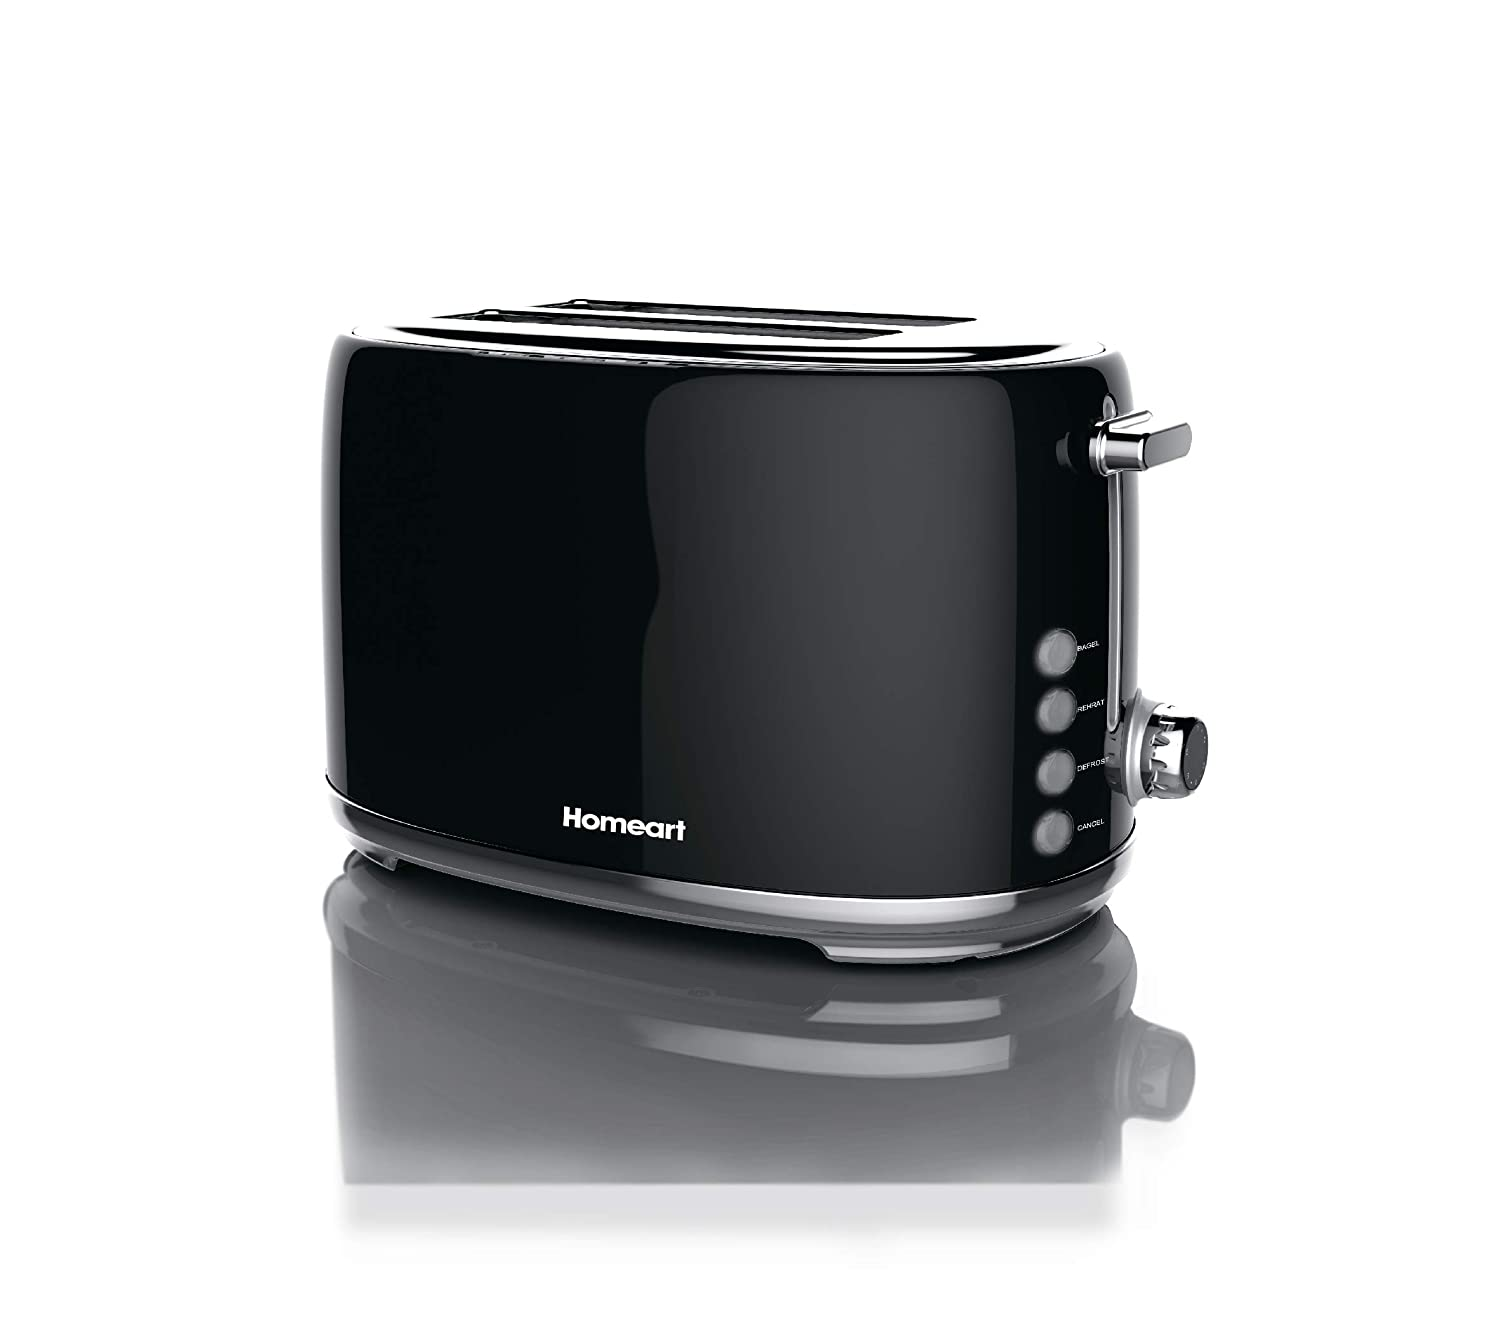 Artisan 2 Slot Toaster by Homeart | 2019 Best Electric Toaster with Multi-Function Toaster Options | Vintage Toaster Stainless Steel (Black)